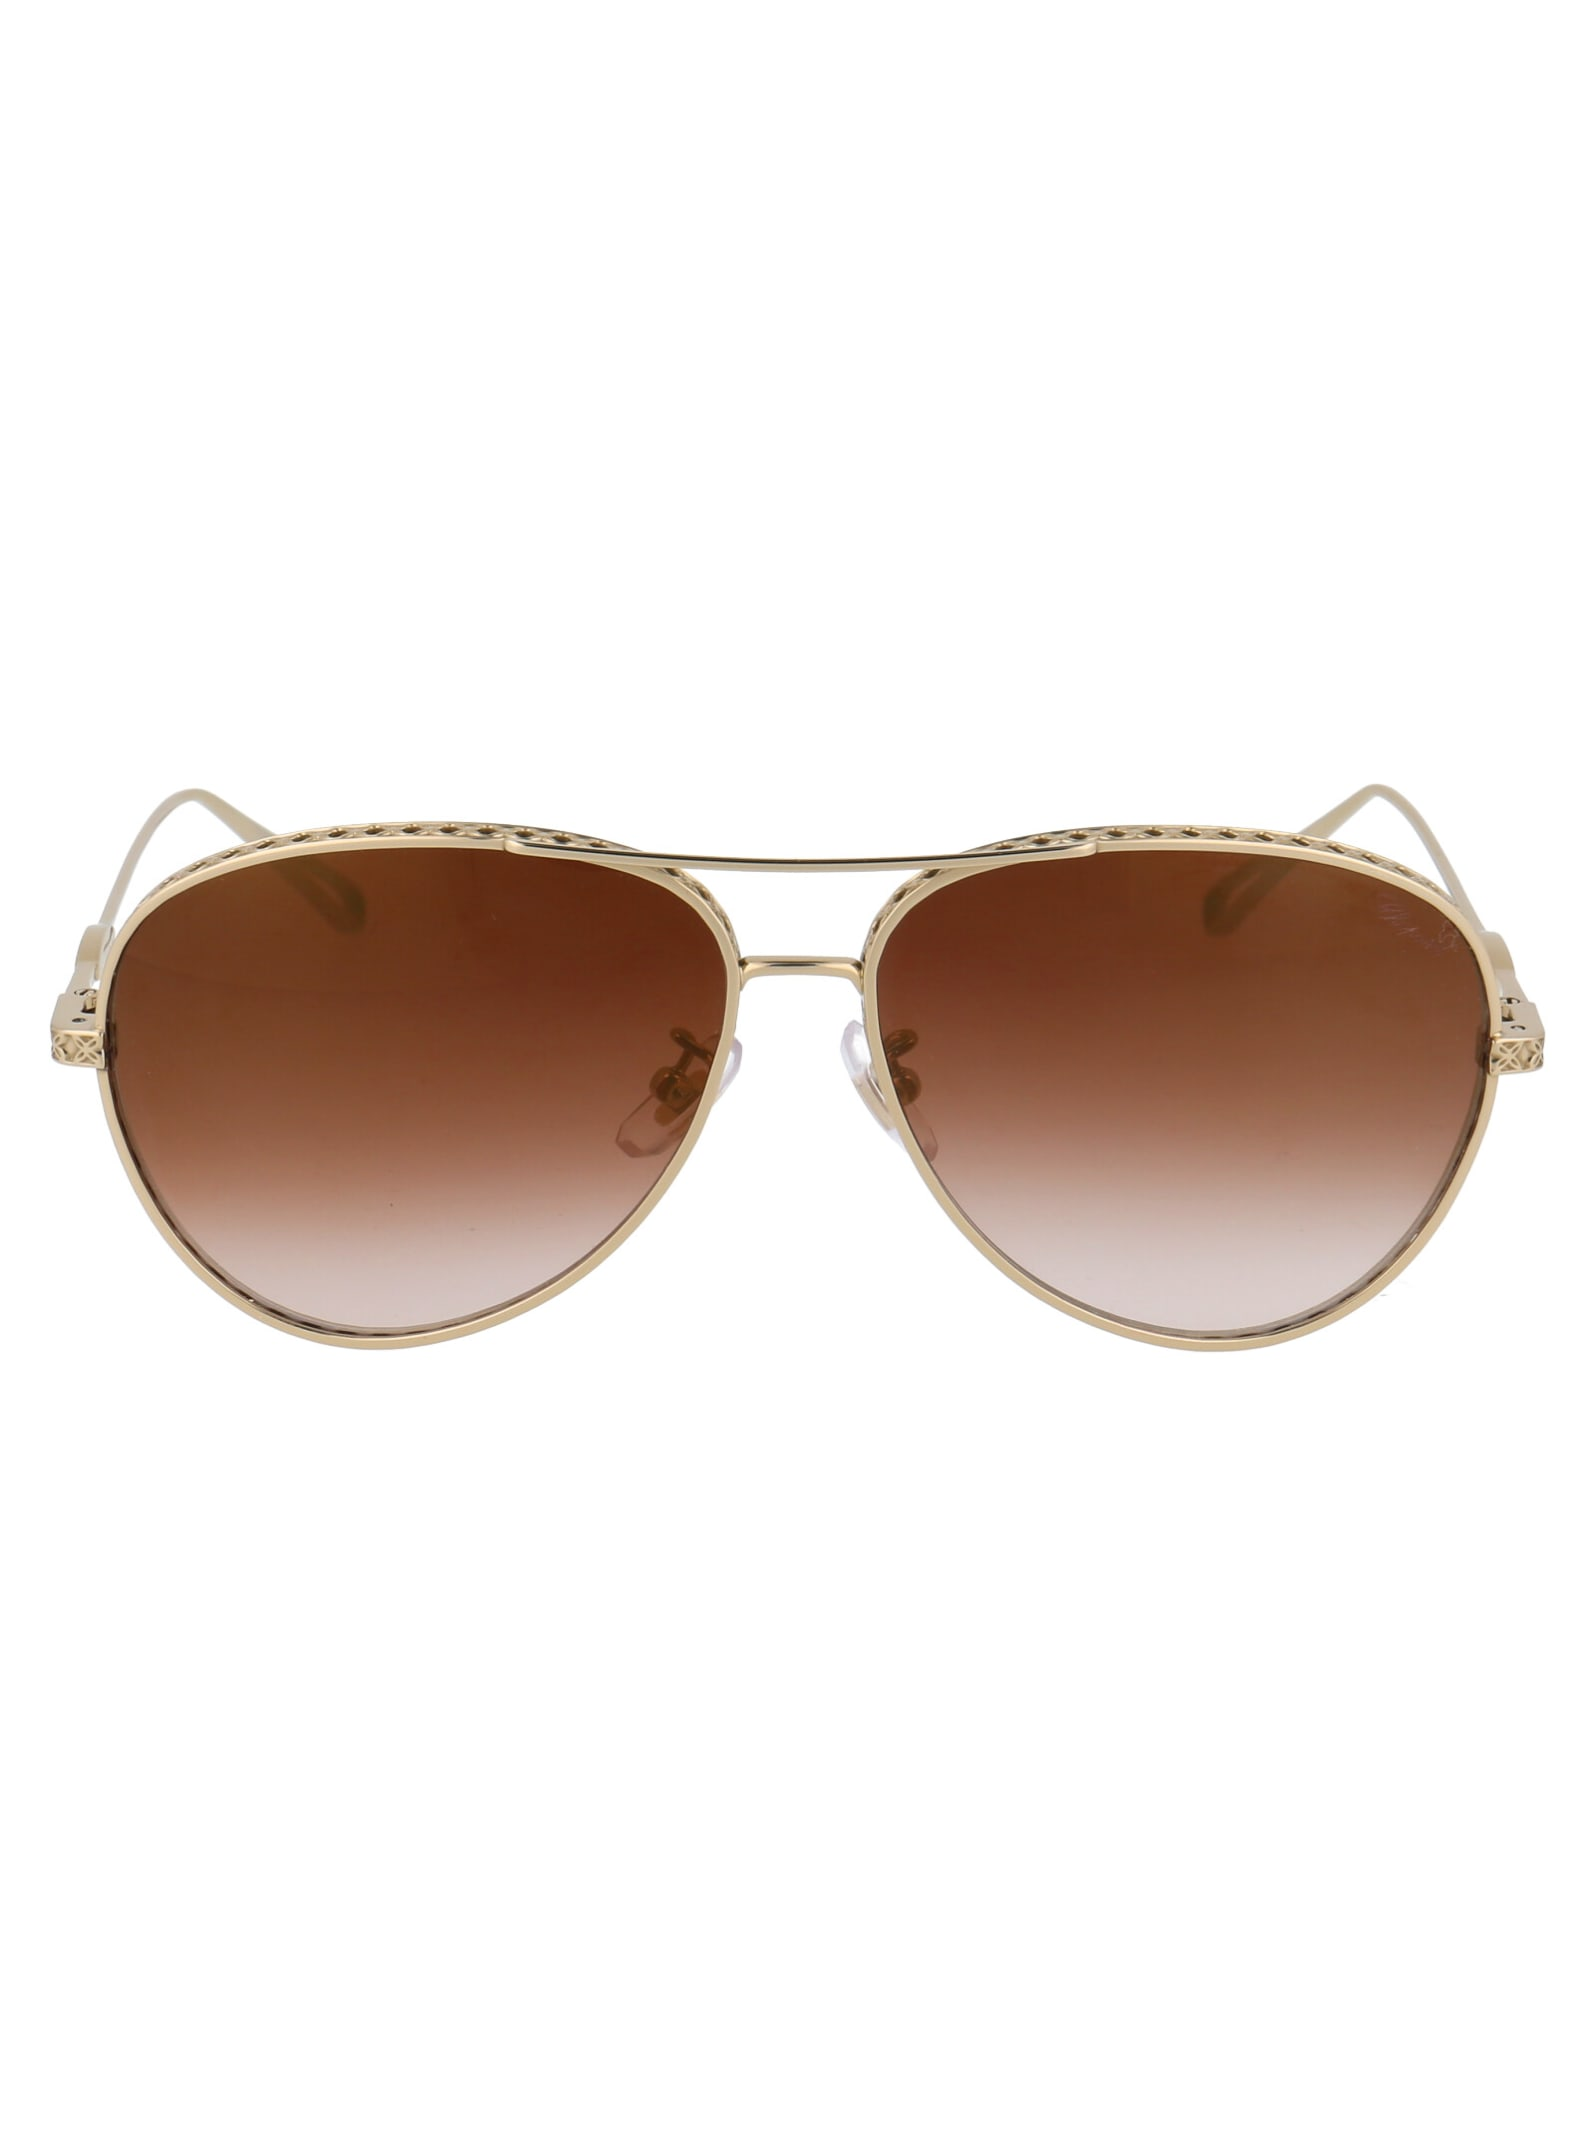 Schc86m Sunglasses